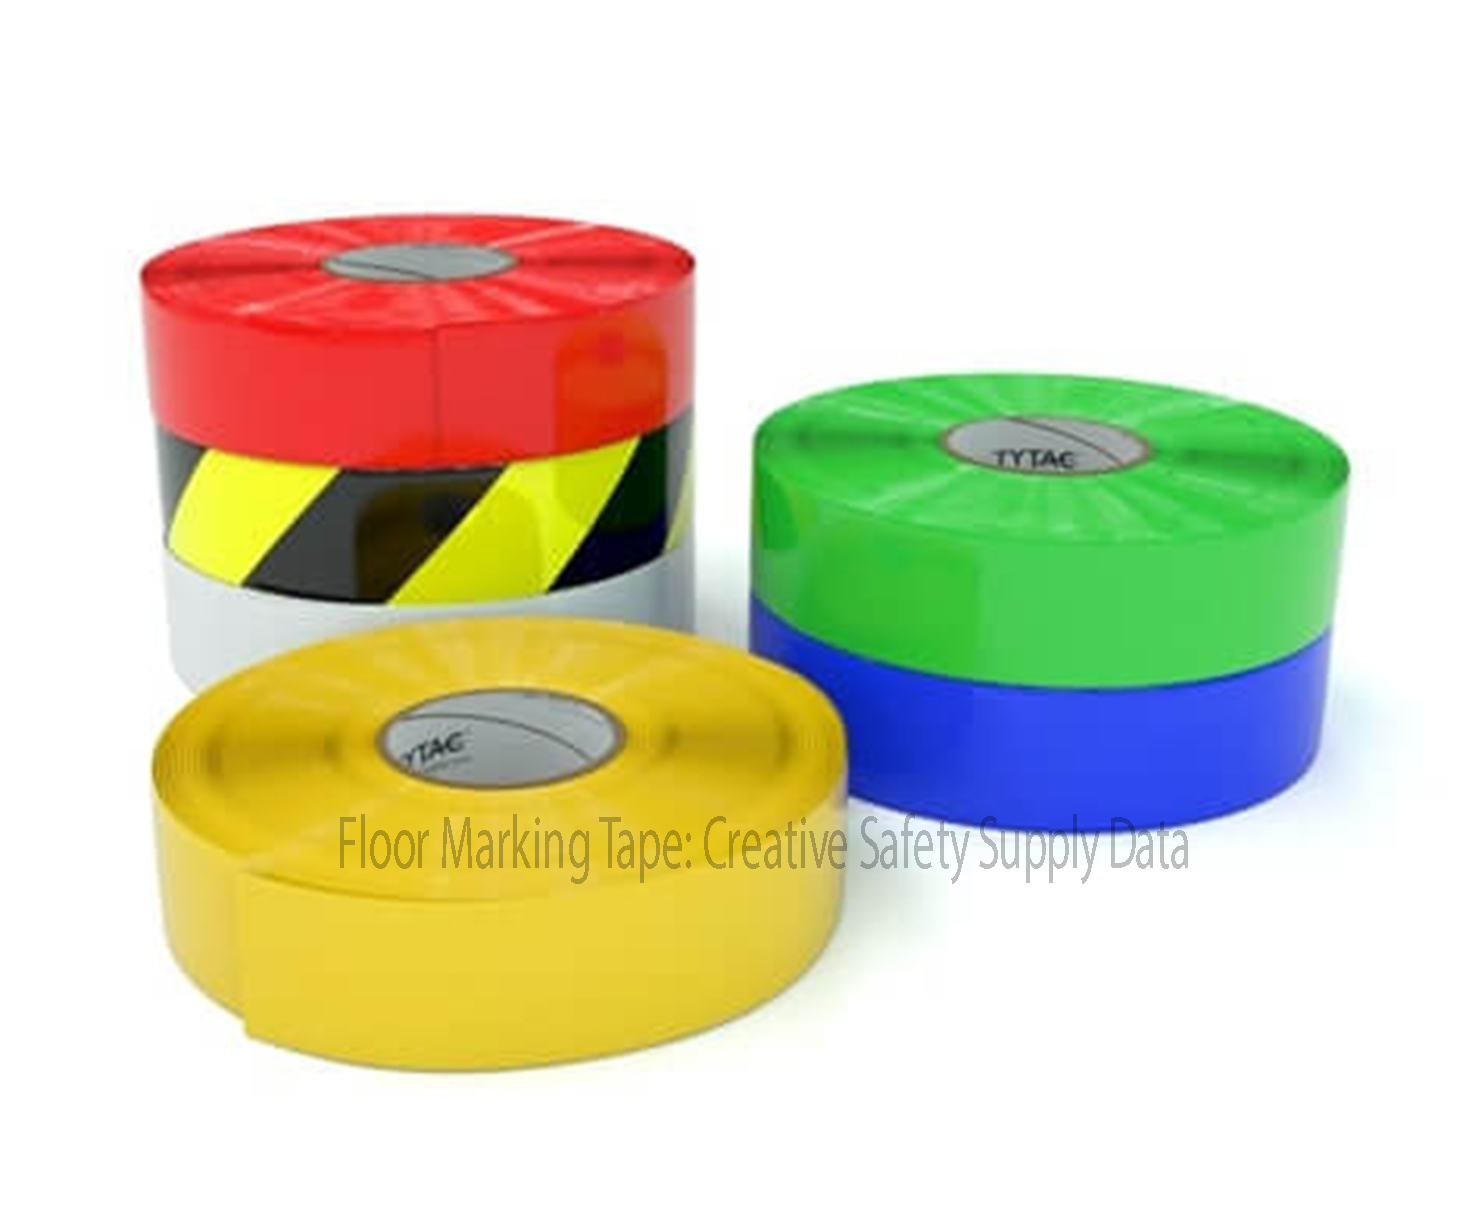 Floor Marking Tape: Creative Safety Supply Data